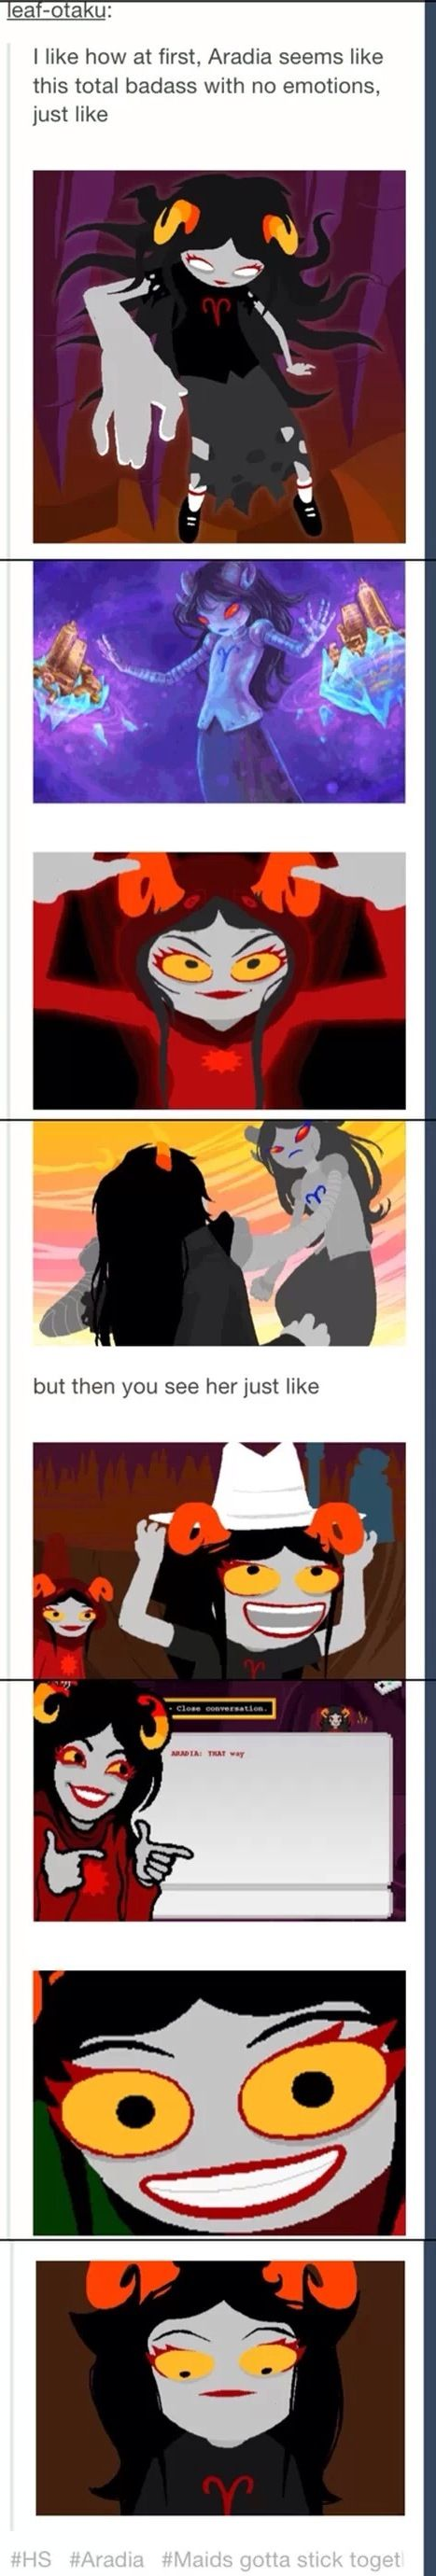 I think aradia is my spirit animal which is funny because I'm an aries<<Glub! 3:D